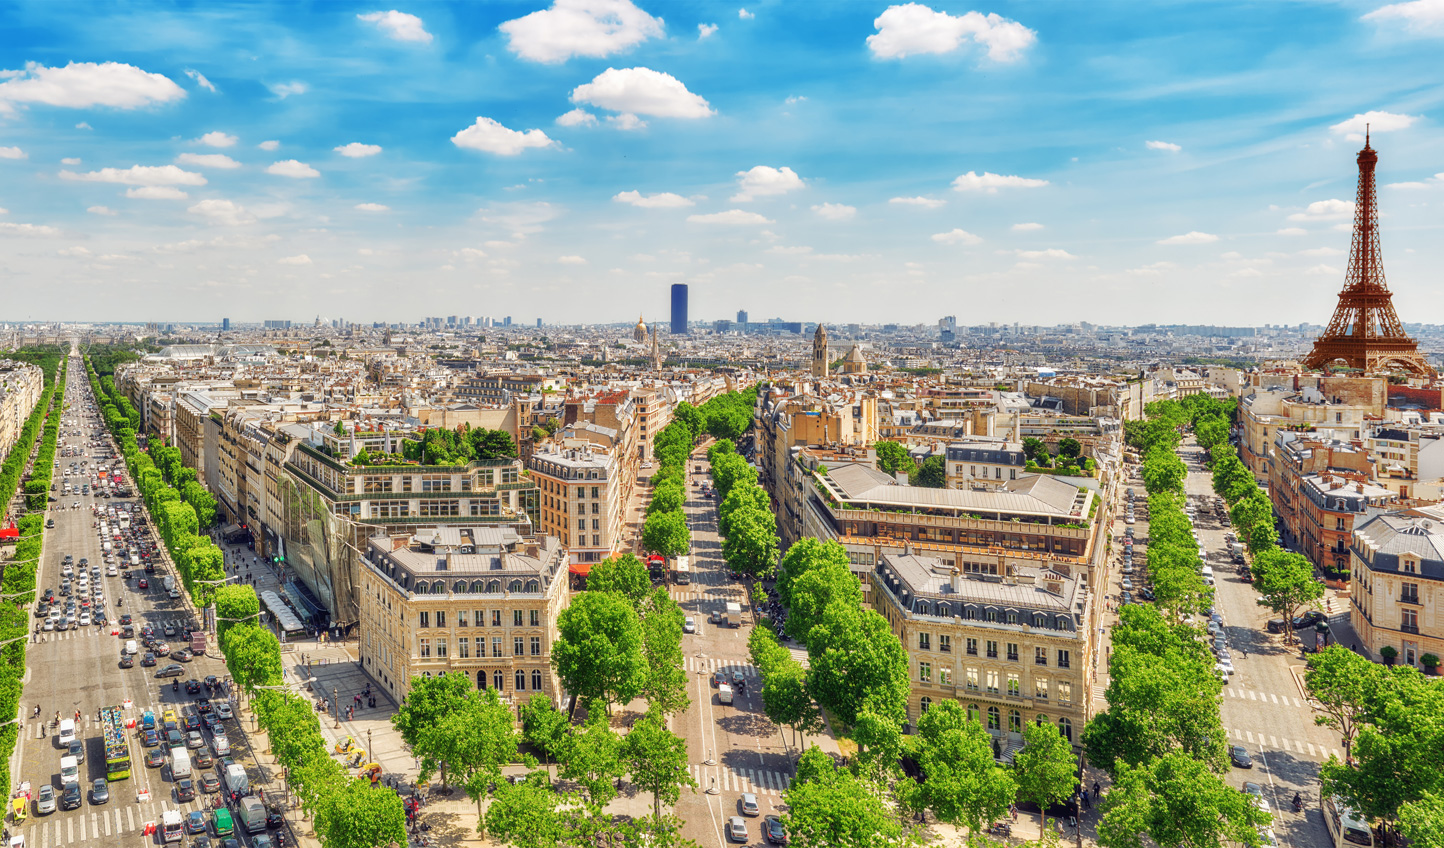 Take the Eurostar and spend a few days wandering through stunning Paris